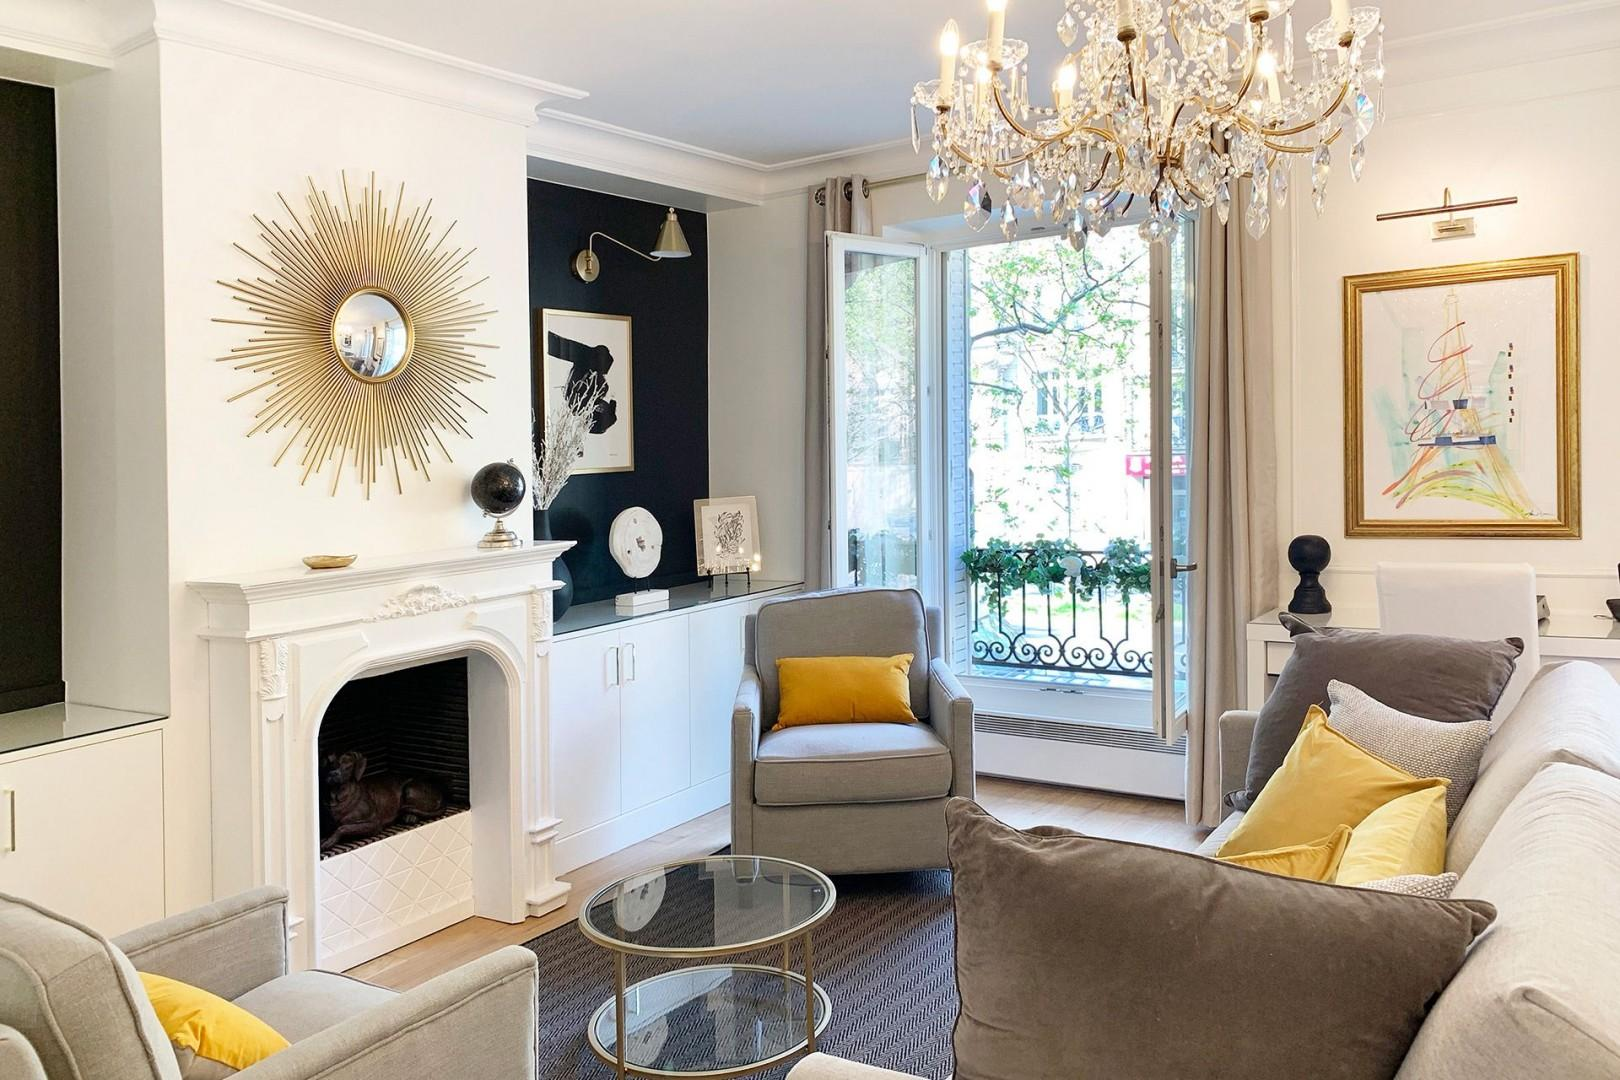 Relax in the stylish, beautifully decorated living room.